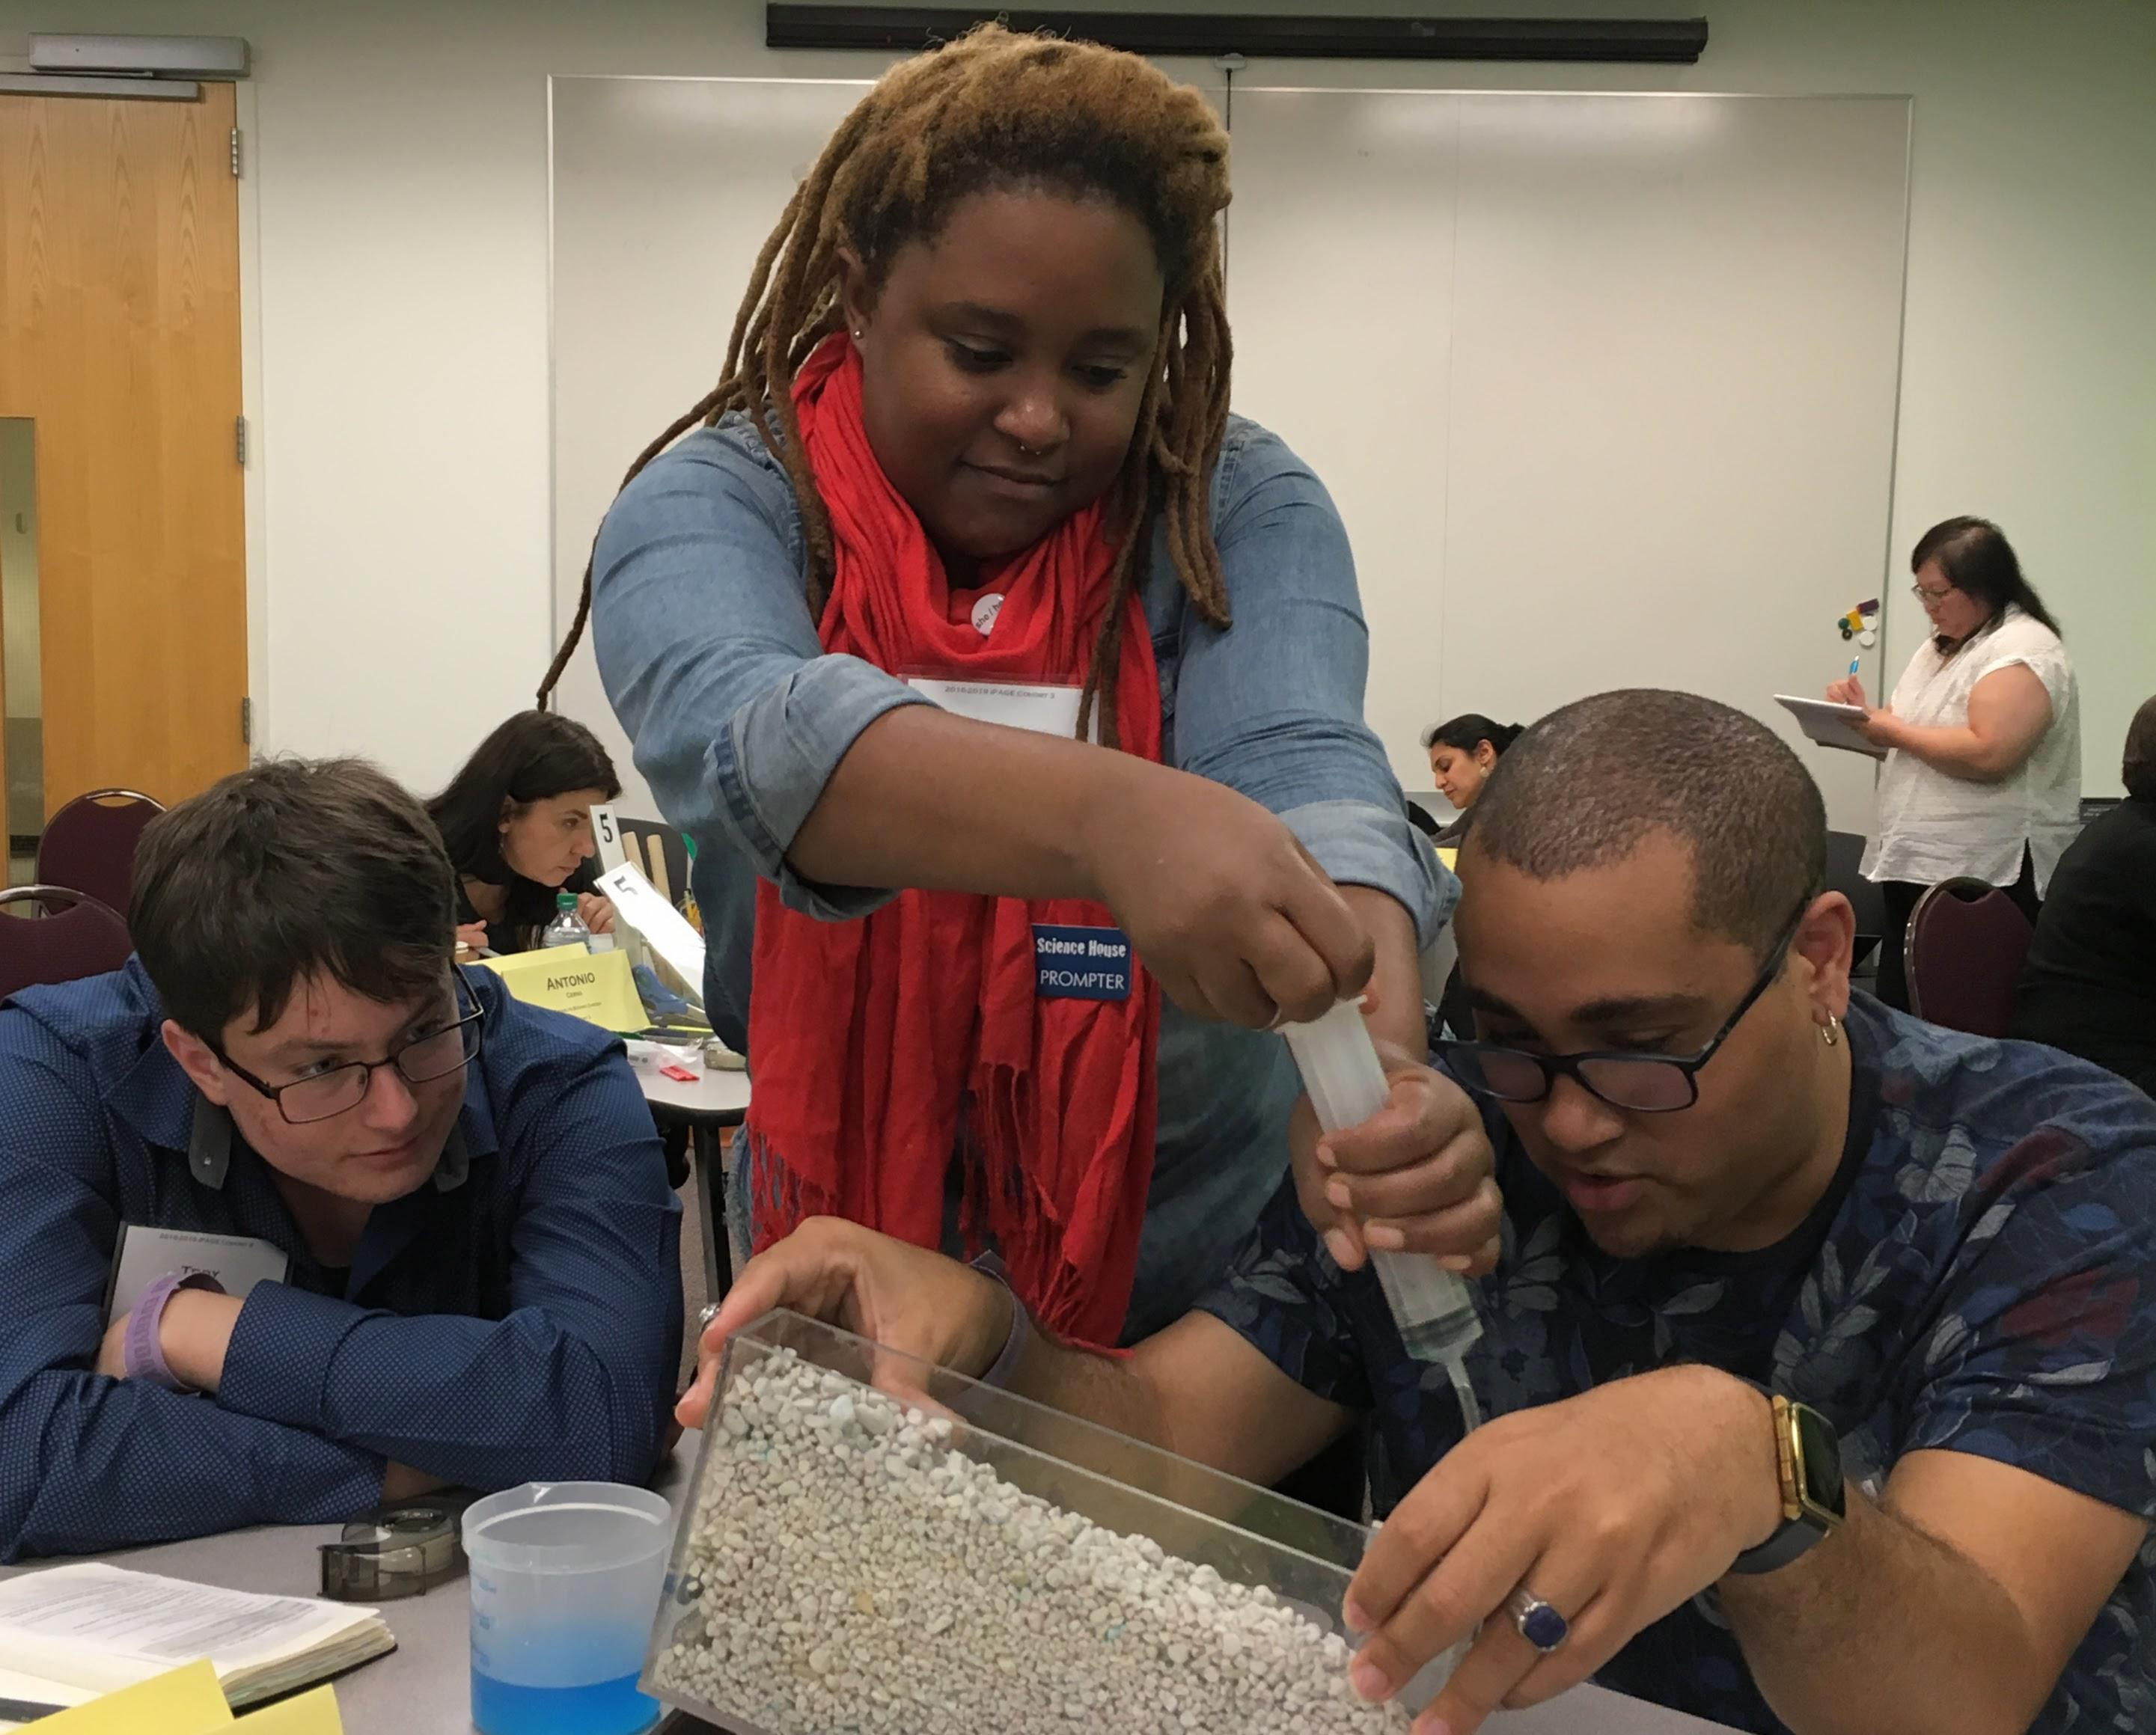 A group of three going a research experiment by injecting liquid into a container filled with rocks.